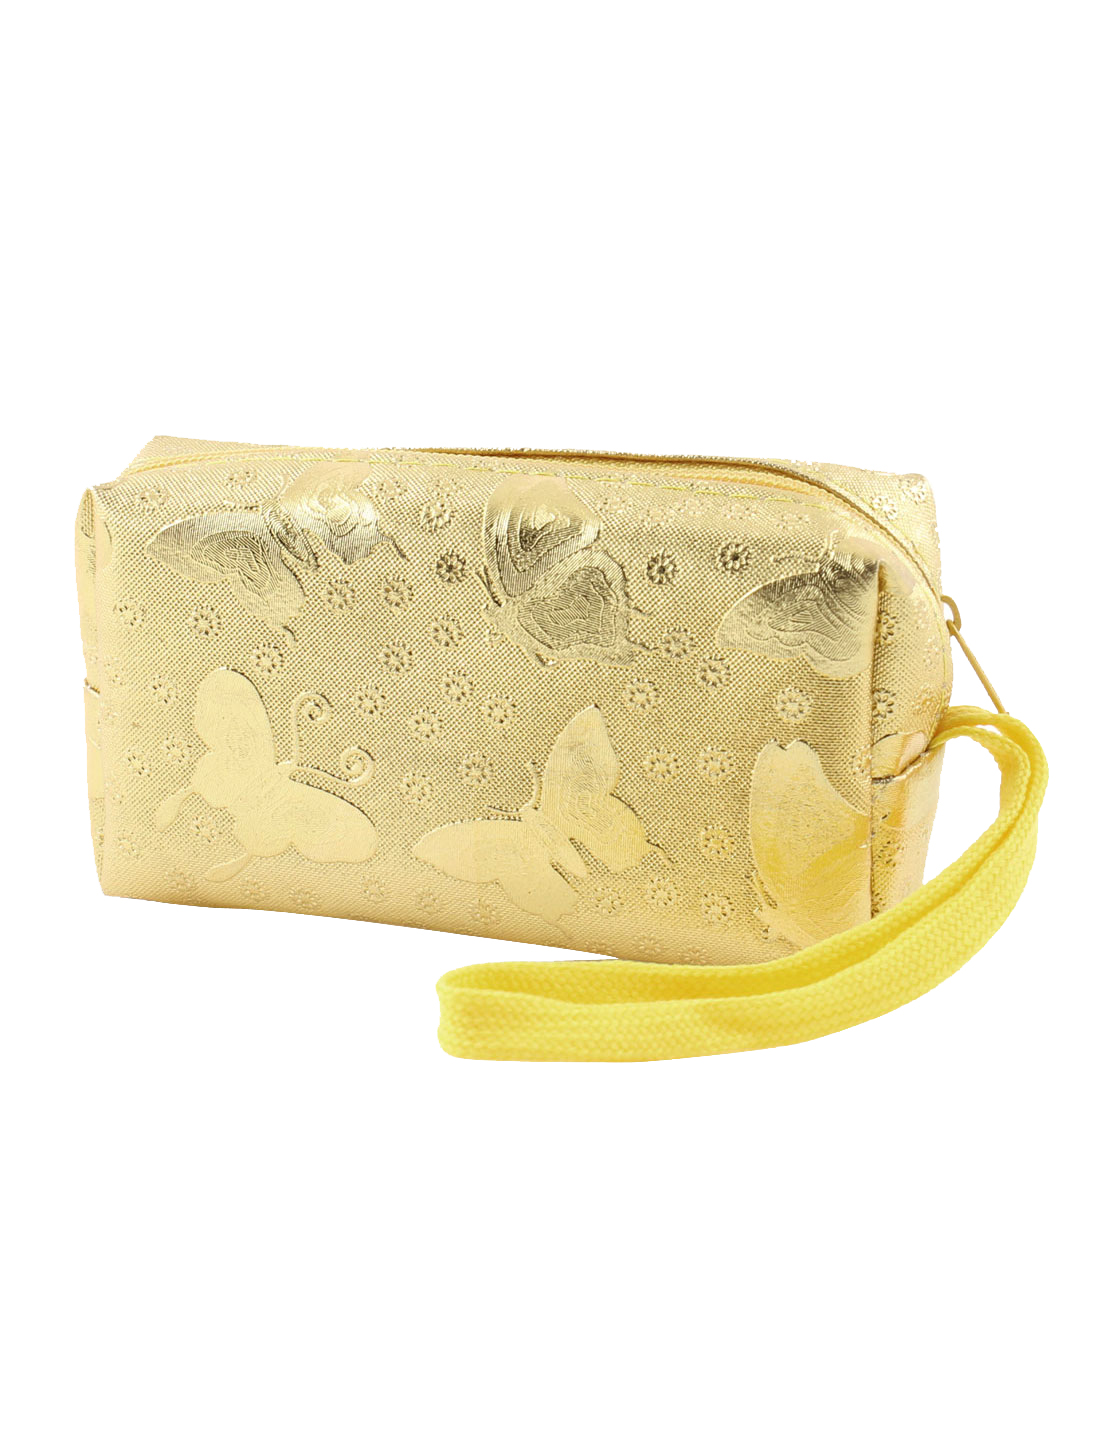 Zip Up Butterfly Flower Pattern Gold Tone Wallet Purse w Strap for Lady